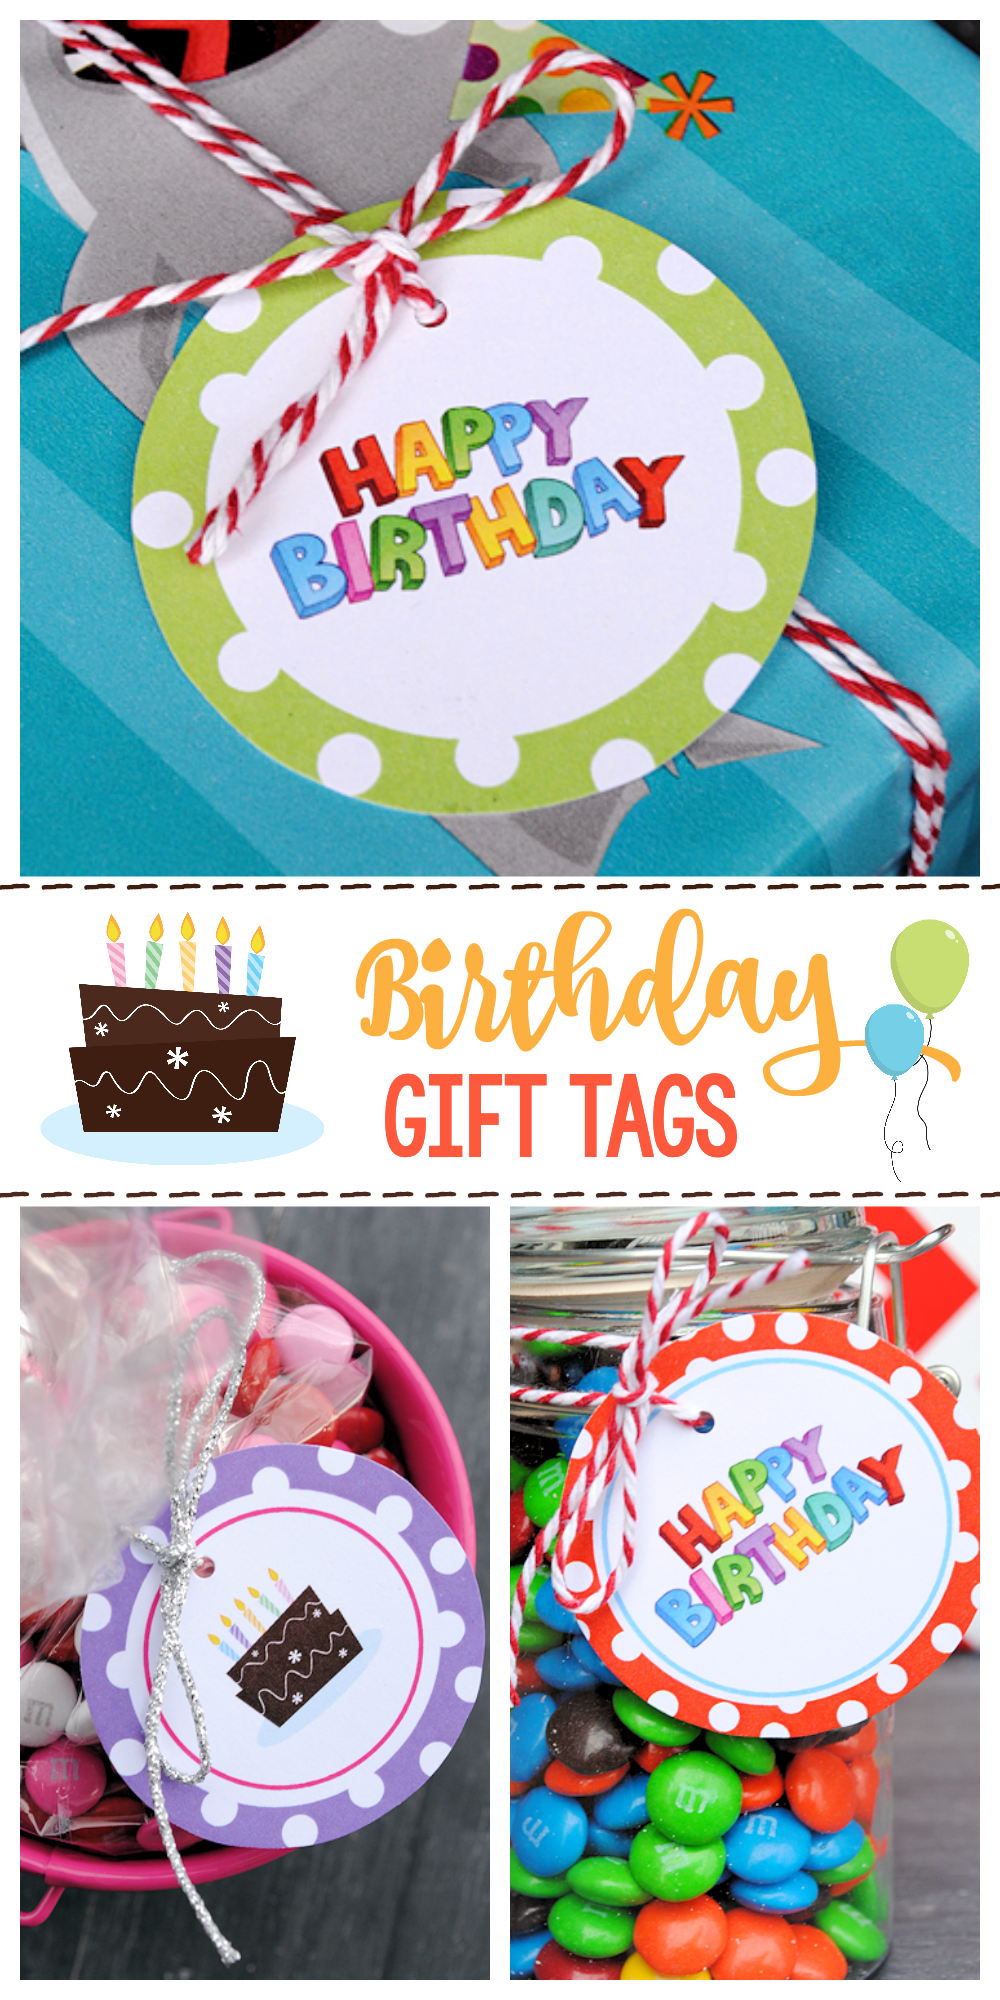 photograph about Happy Birthday Tag Printable named Totally free Printable Birthday Present Tags Enjoyable-Squared